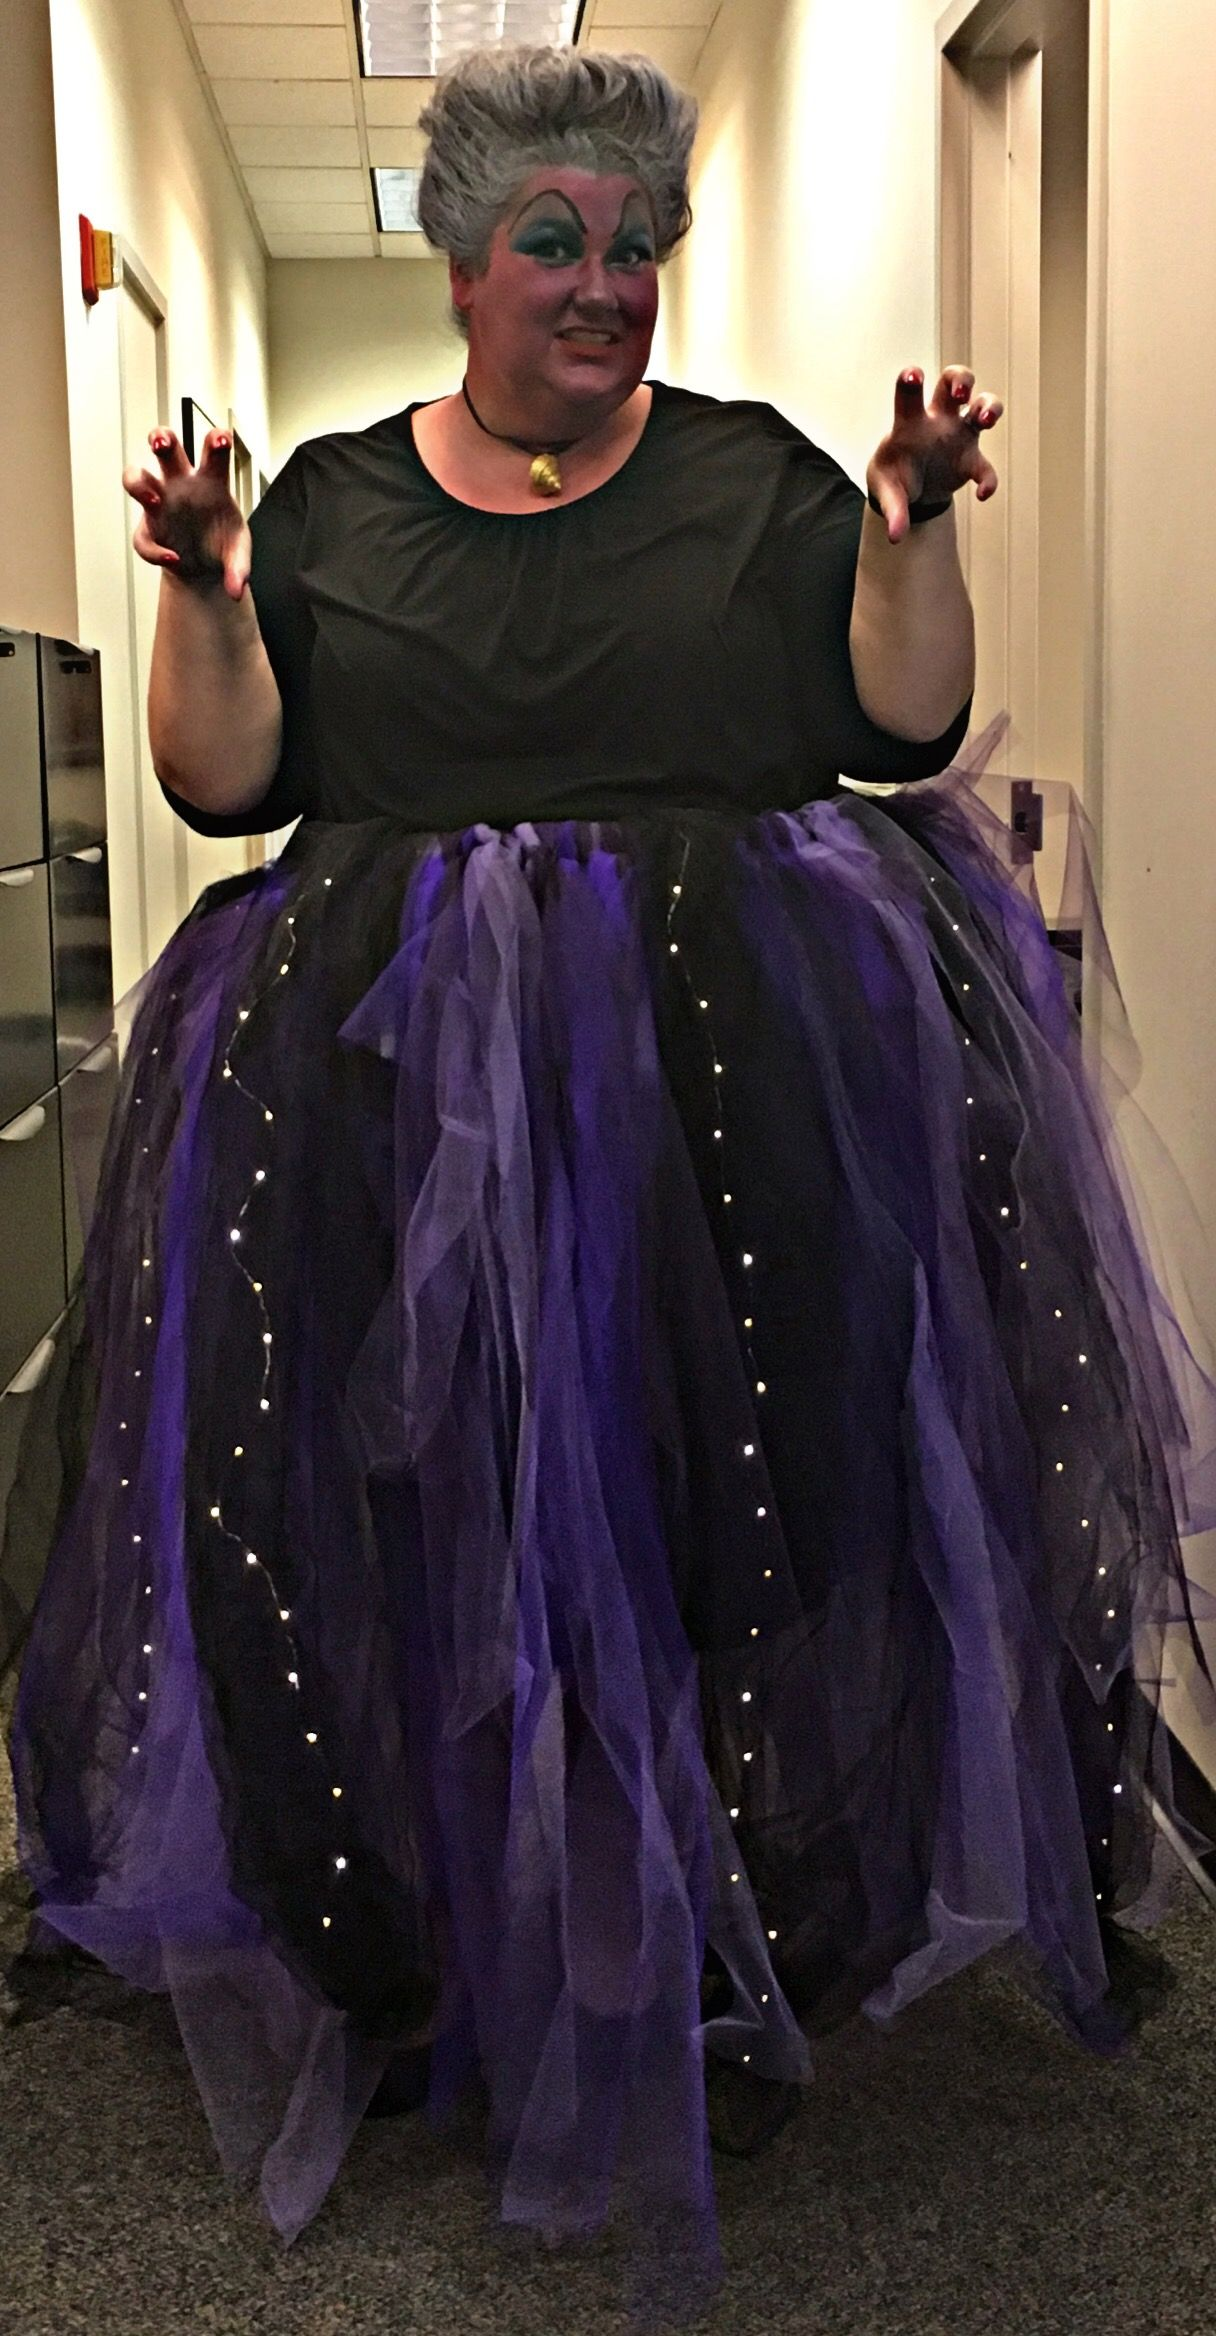 Diy ursula tulle skirt complete we led tentacles and wicked makeup diy ursula tulle skirt complete we led tentacles and wicked makeup solutioingenieria Image collections